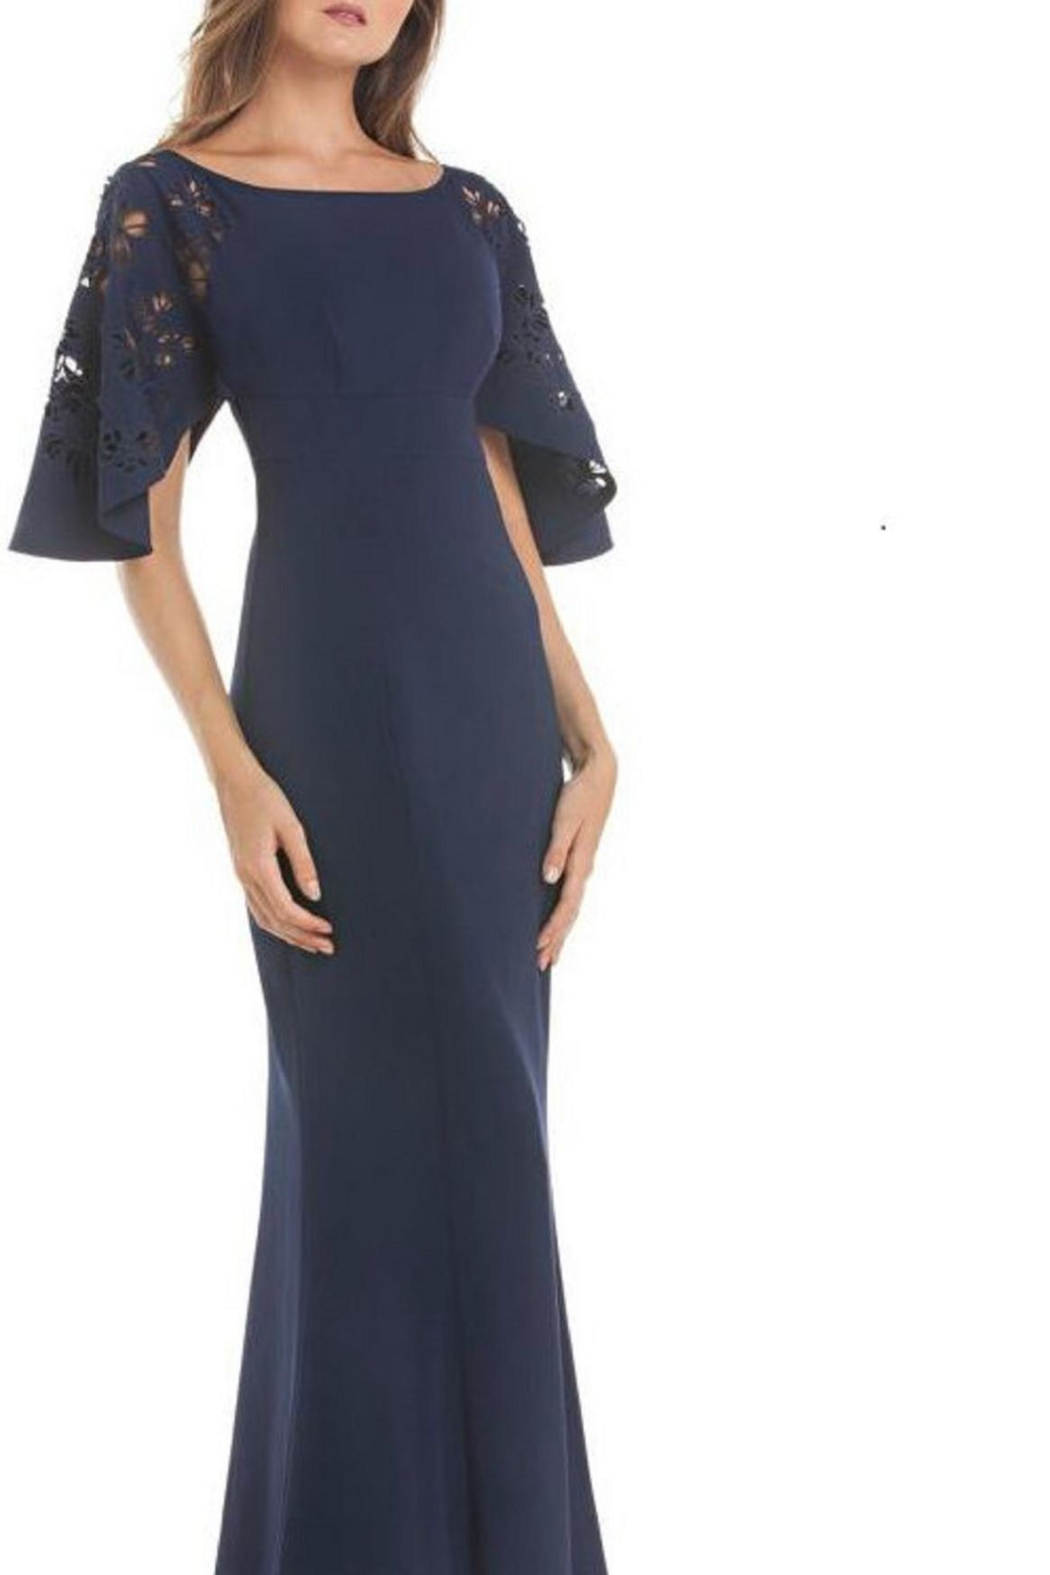 Kay Unger Short Sleeve Gown from New Jersey by District 5 Boutique ...